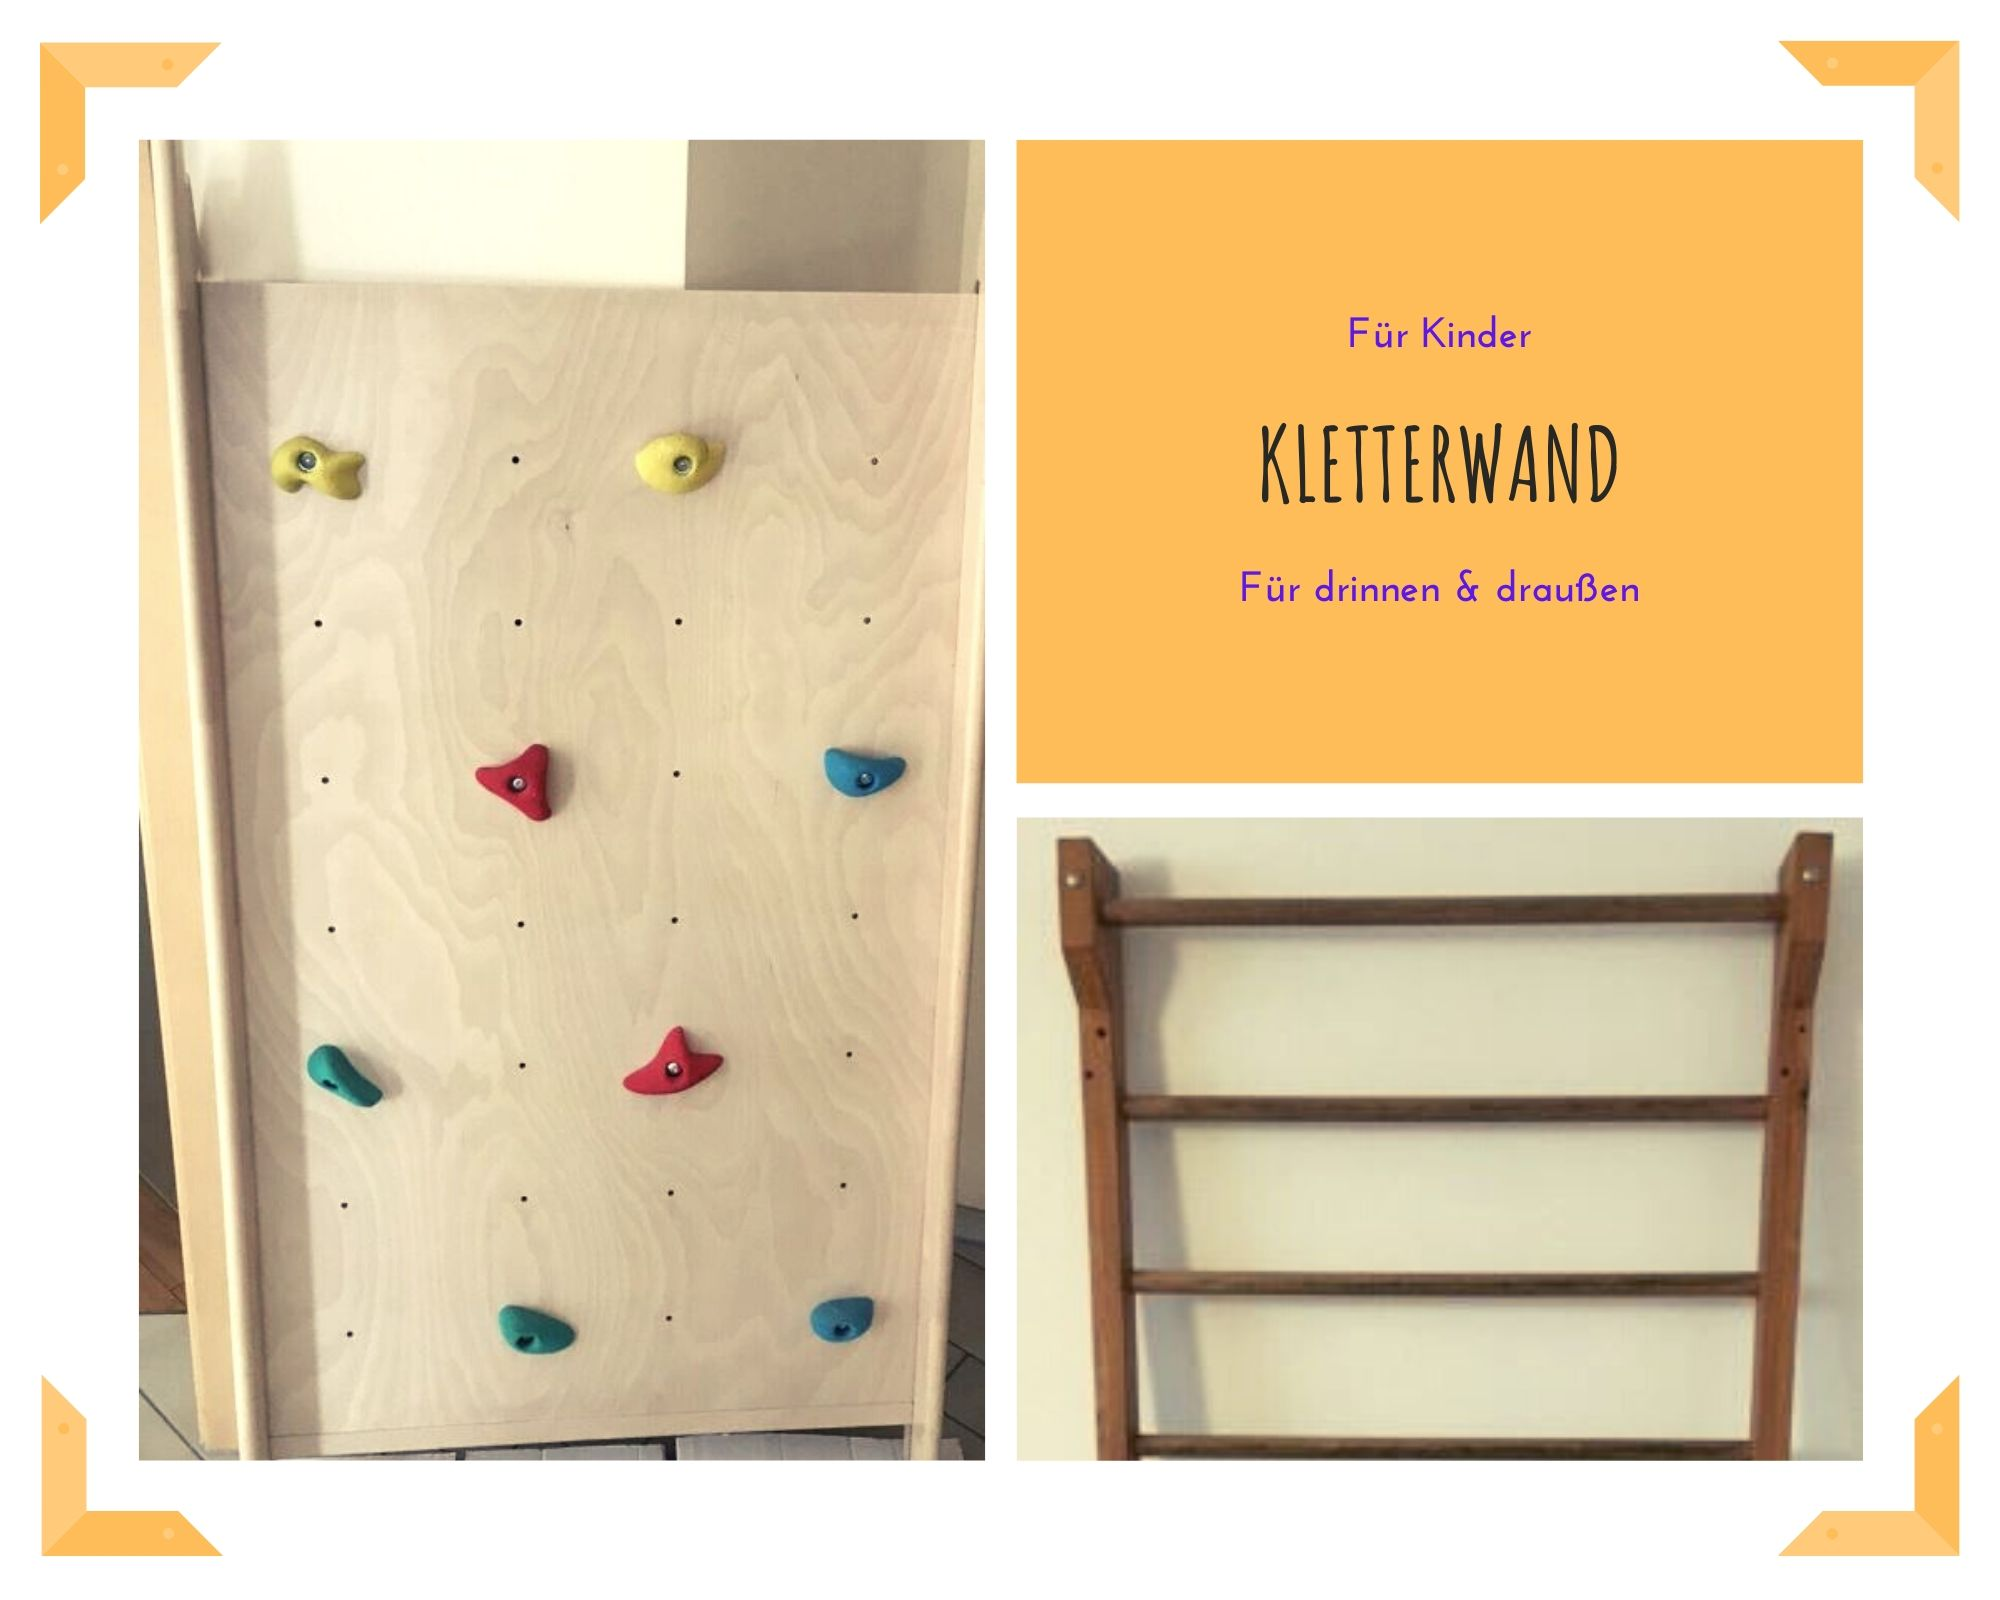 Kletterwand und Sprossenwand Collage